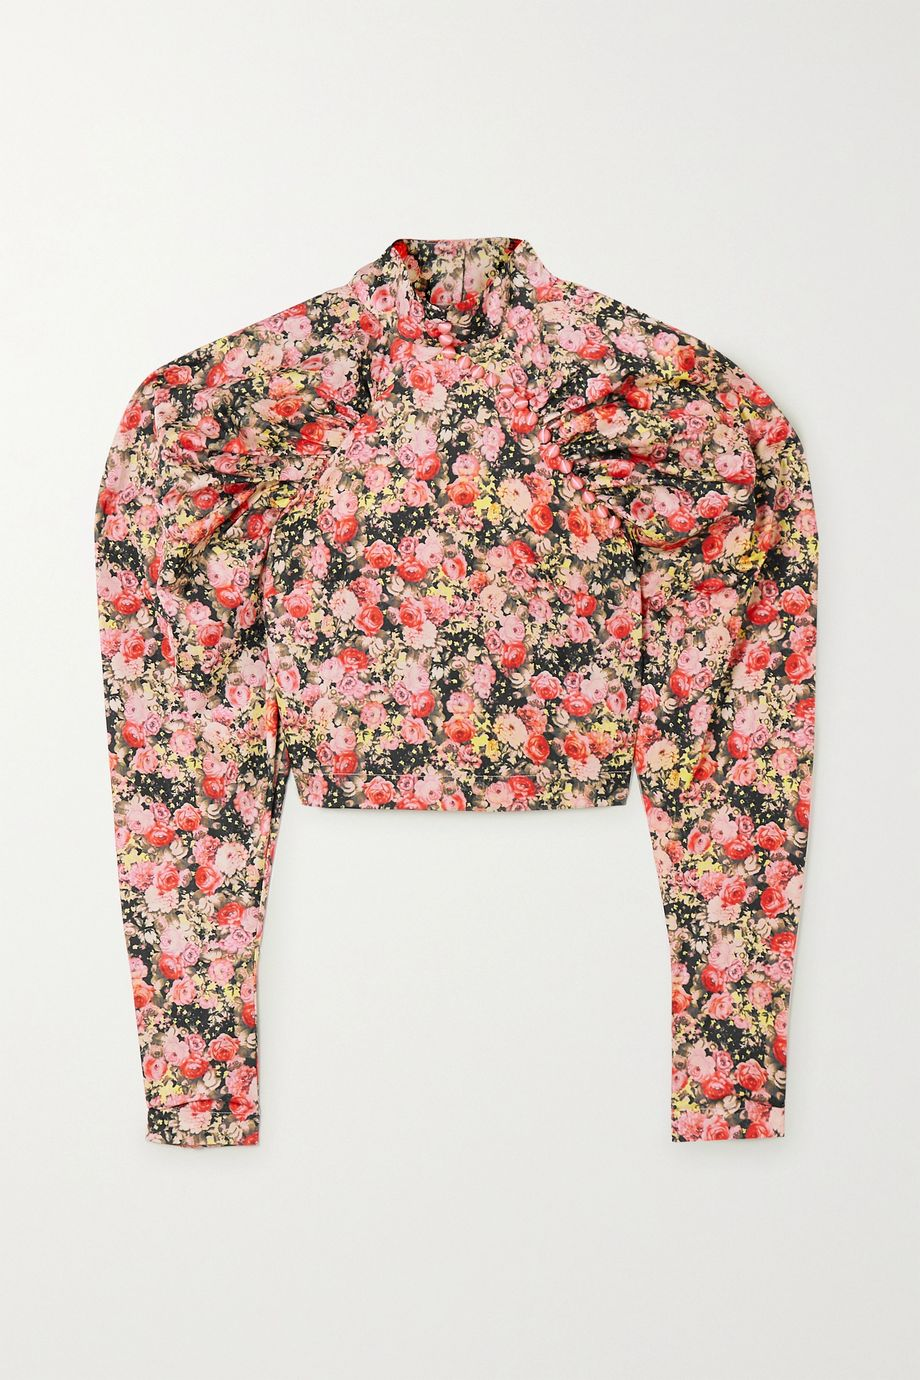 ROTATE Birger Christensen Kim cropped floral-print woven top